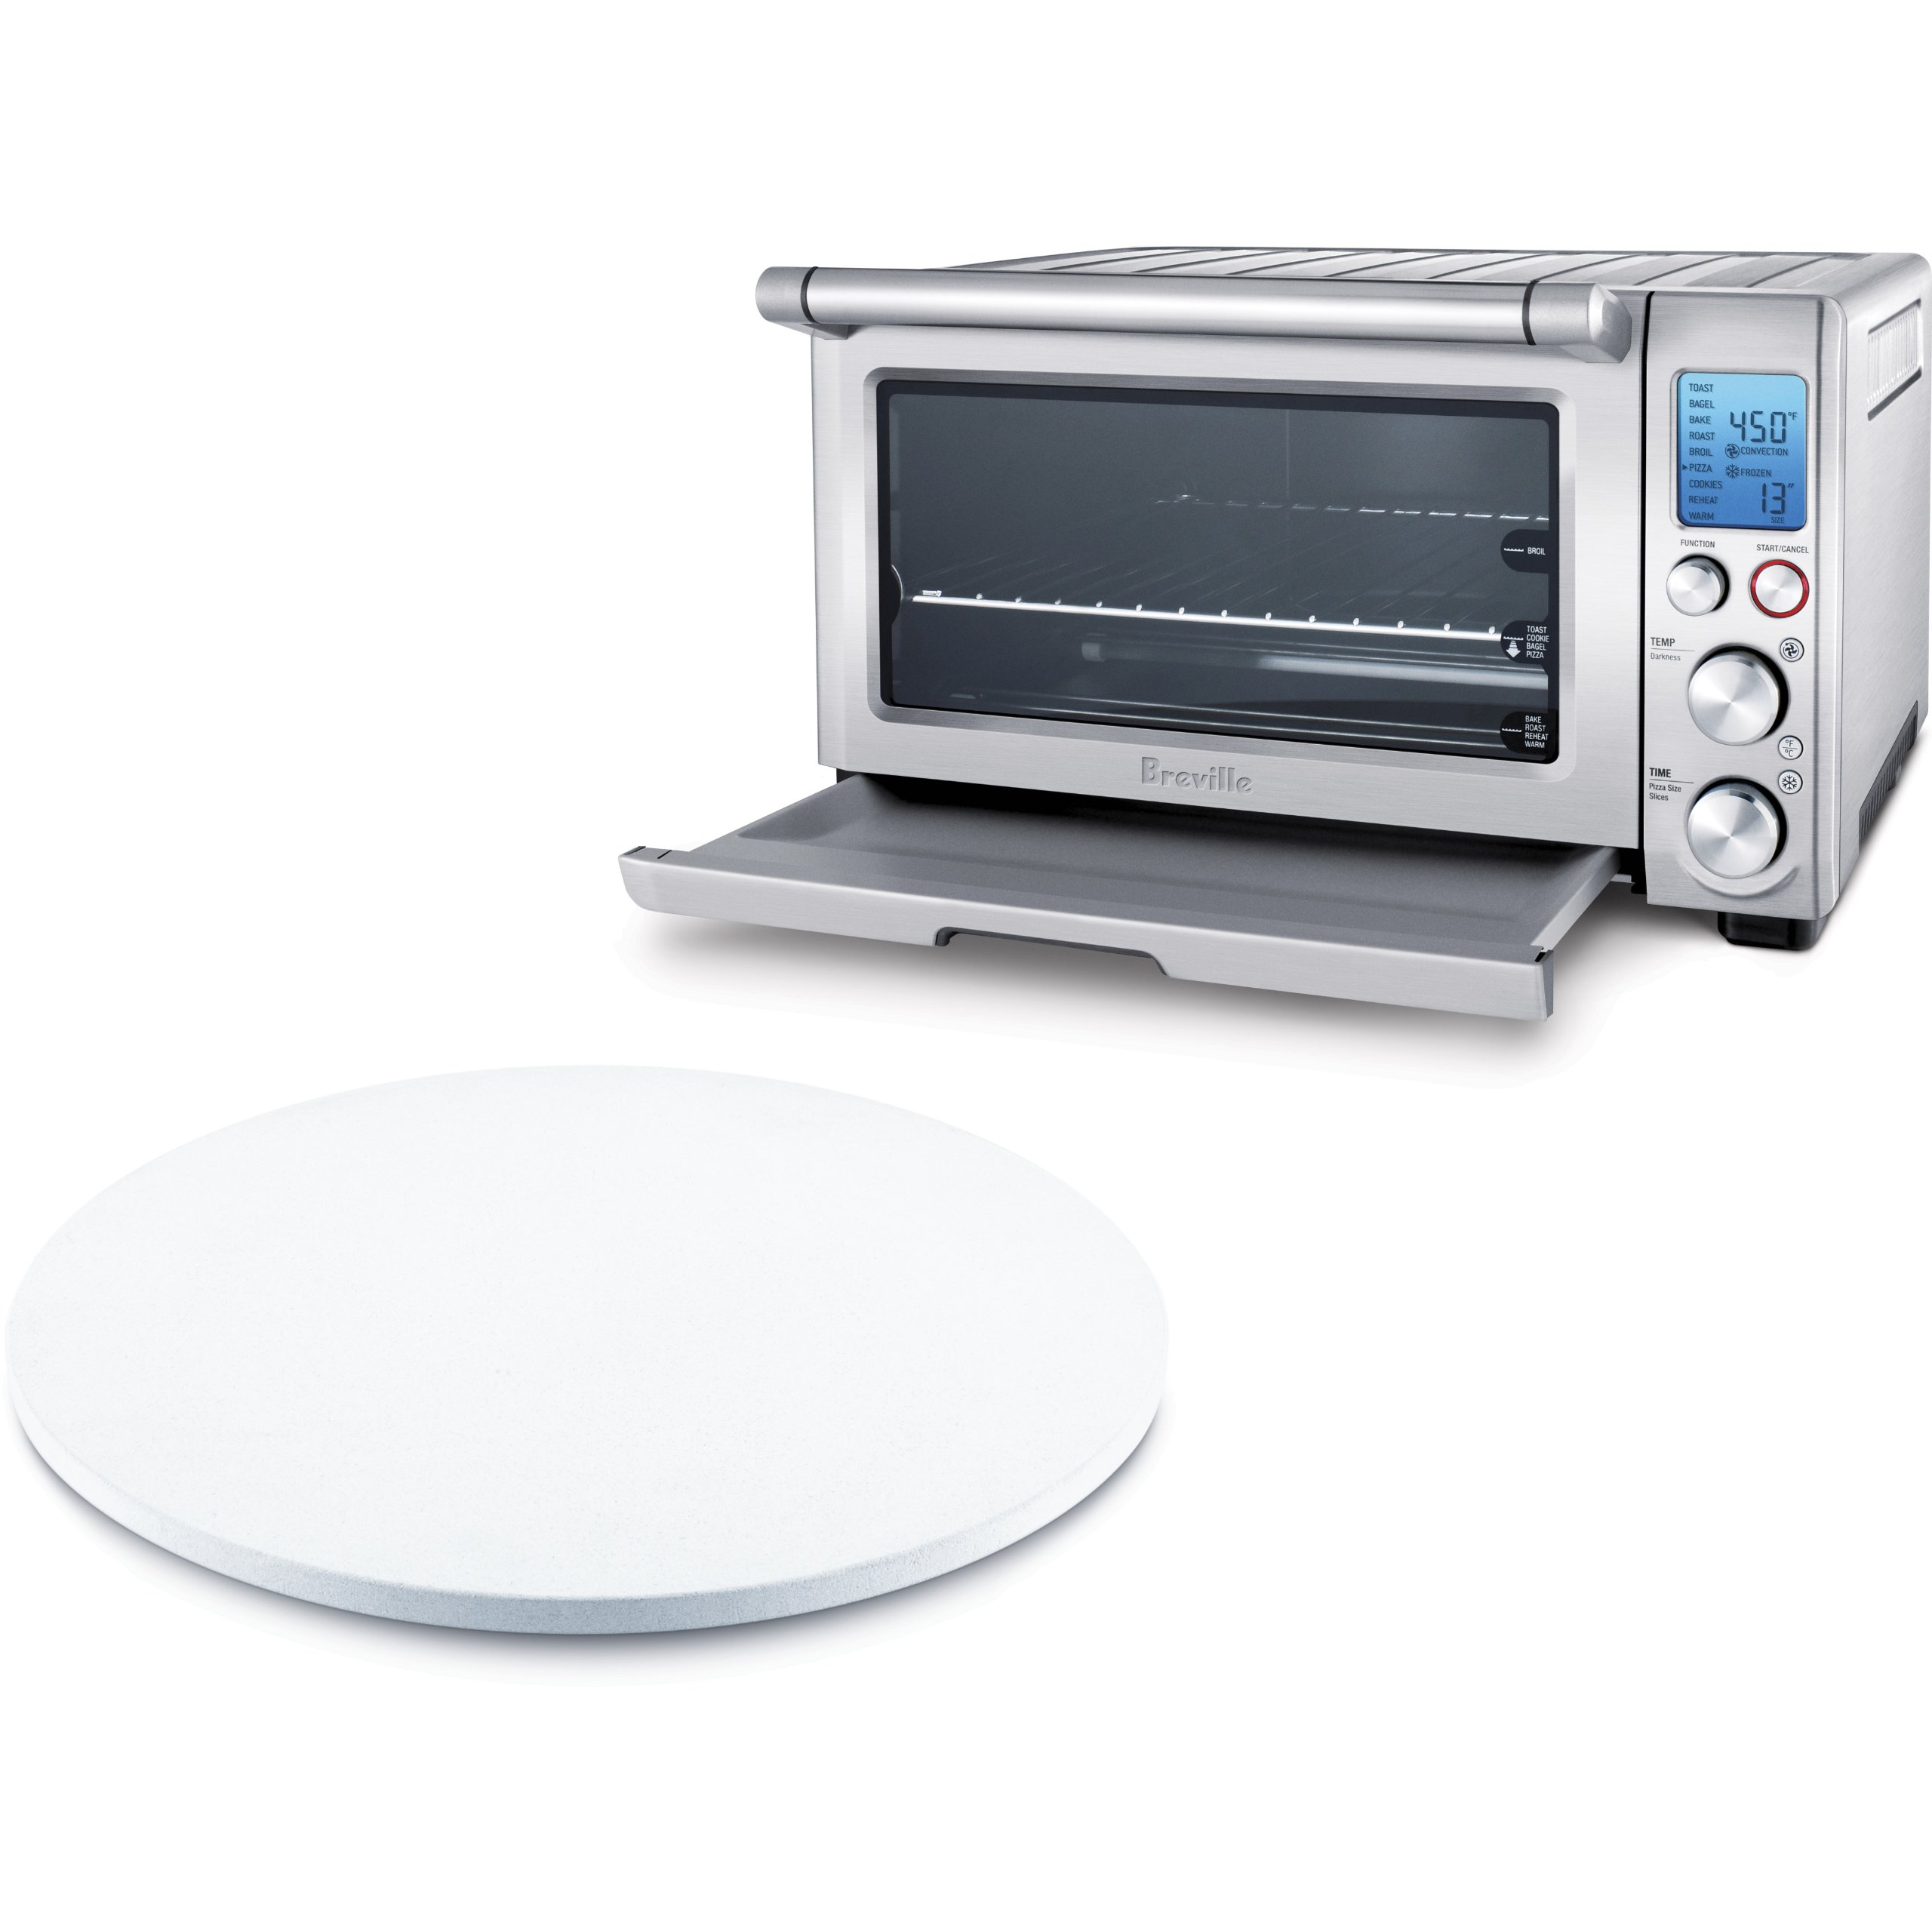 Breville BOV800XL Reinforced Stainless Steel Smart Oven with 13 Inch Pizza Stone by BREVILLE